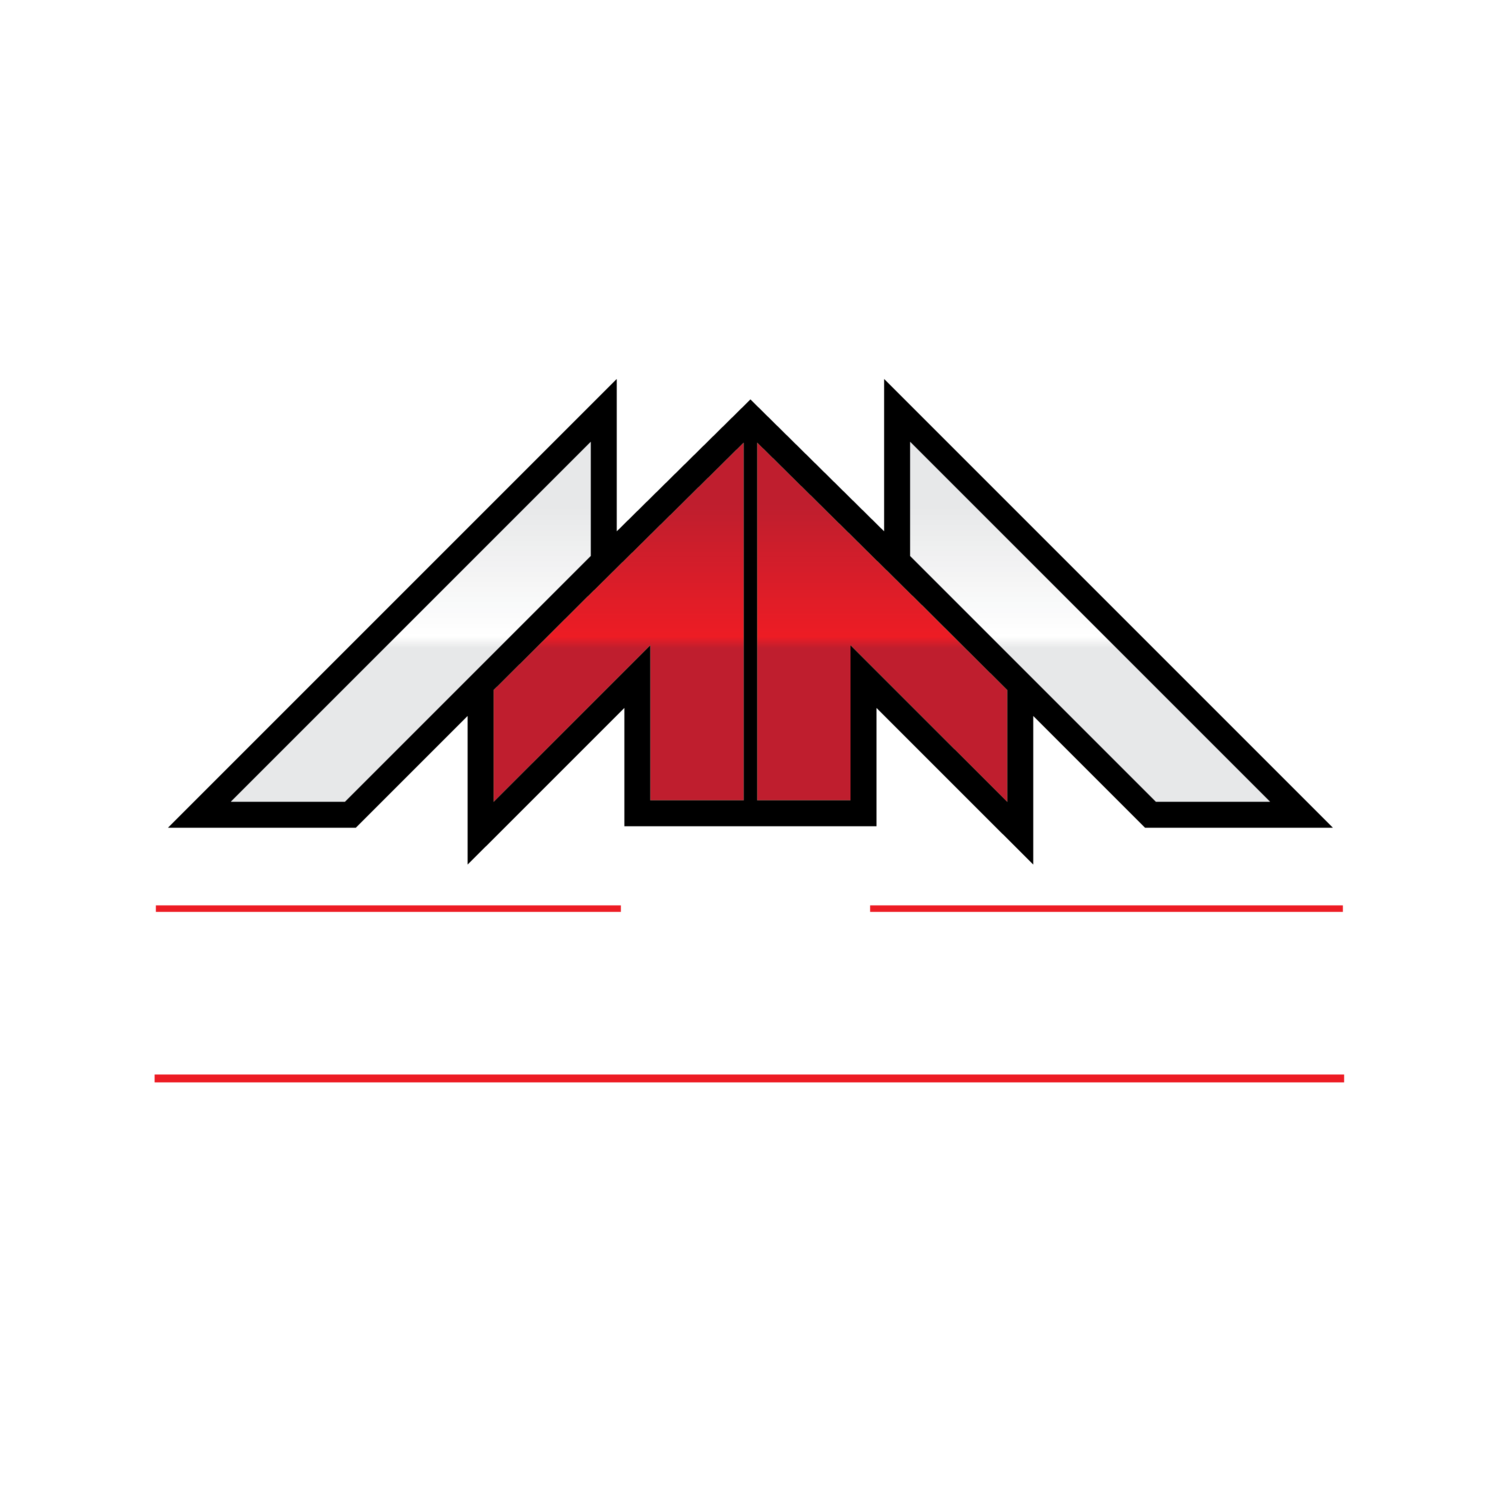 The Manual Man